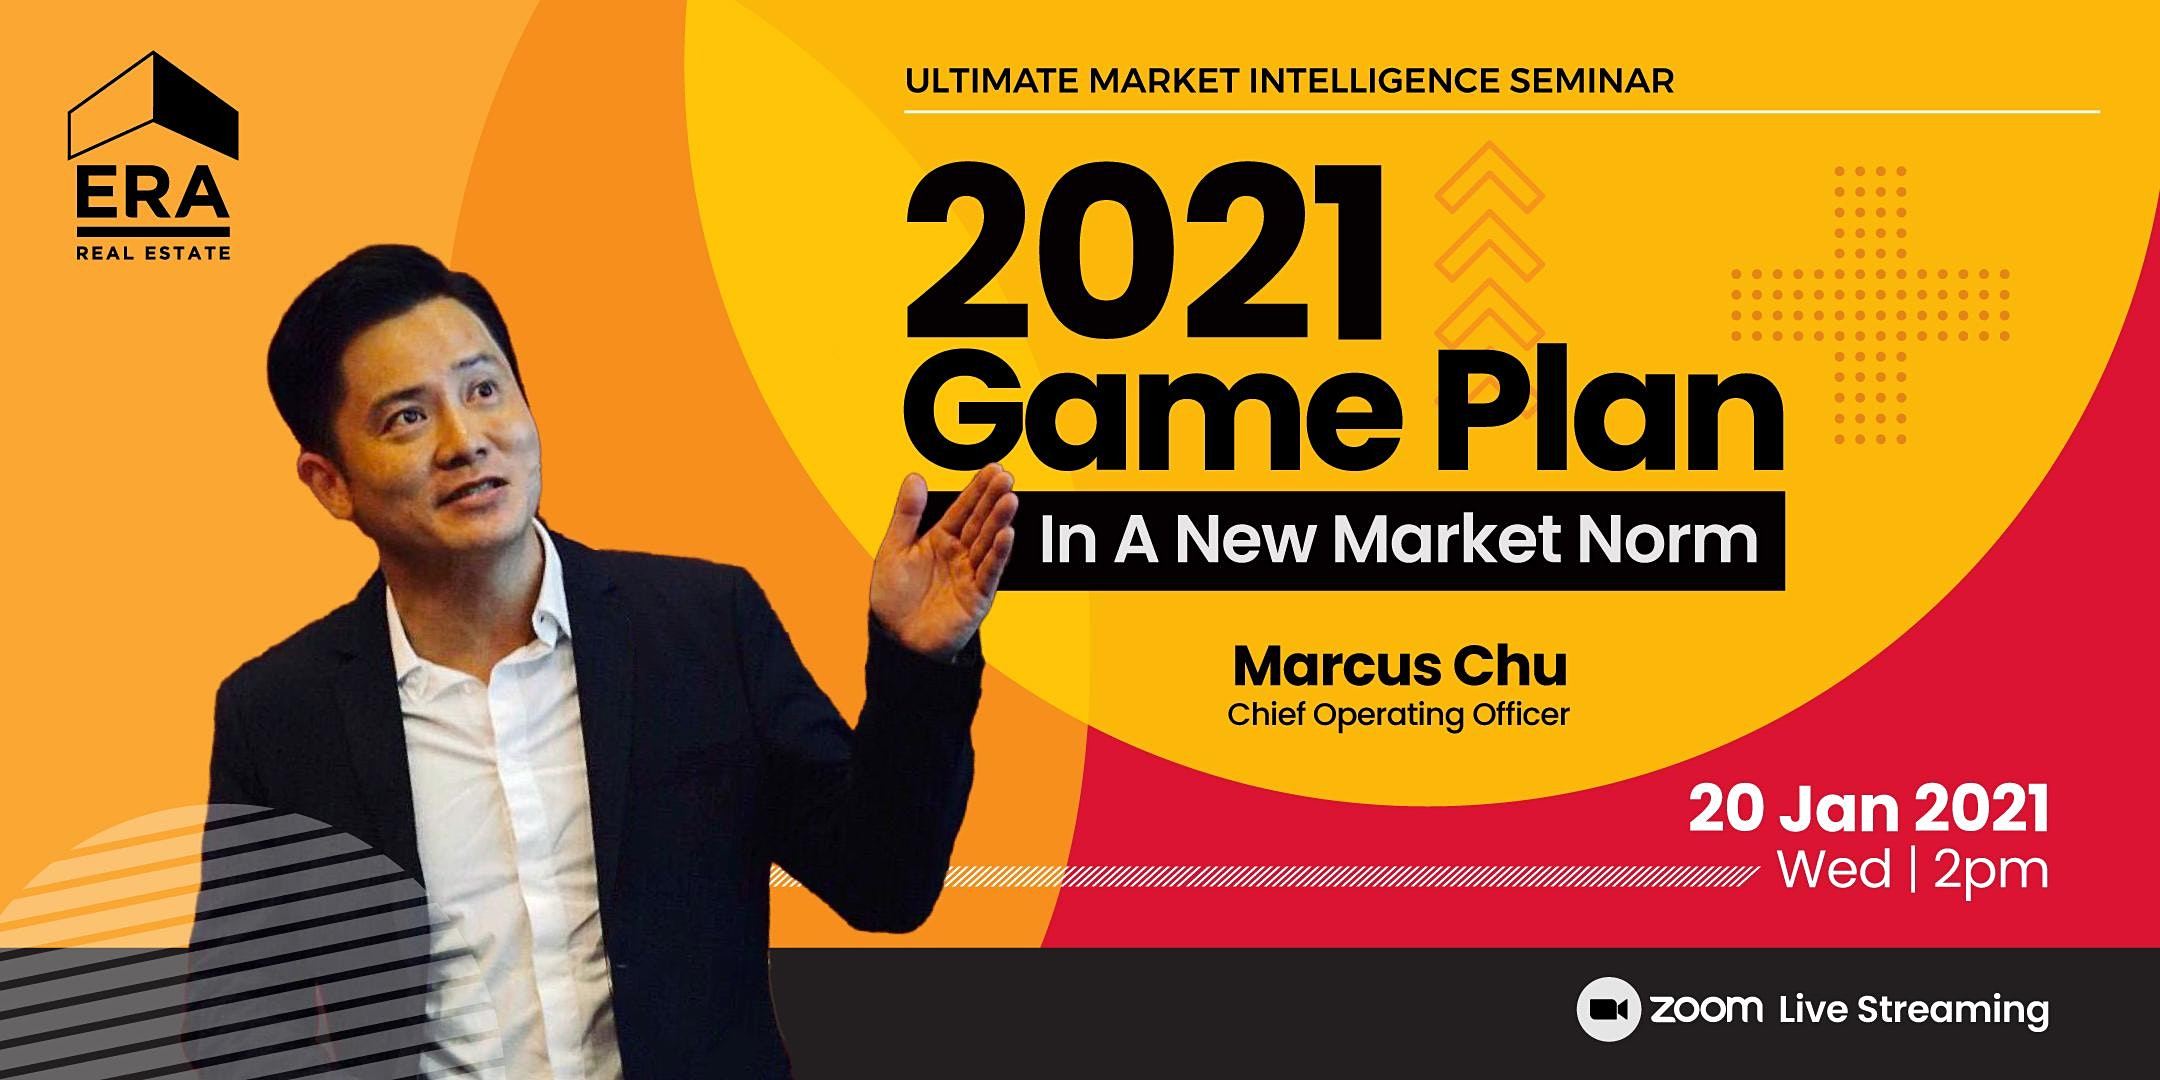 Ultimate Market Intelligence Seminar